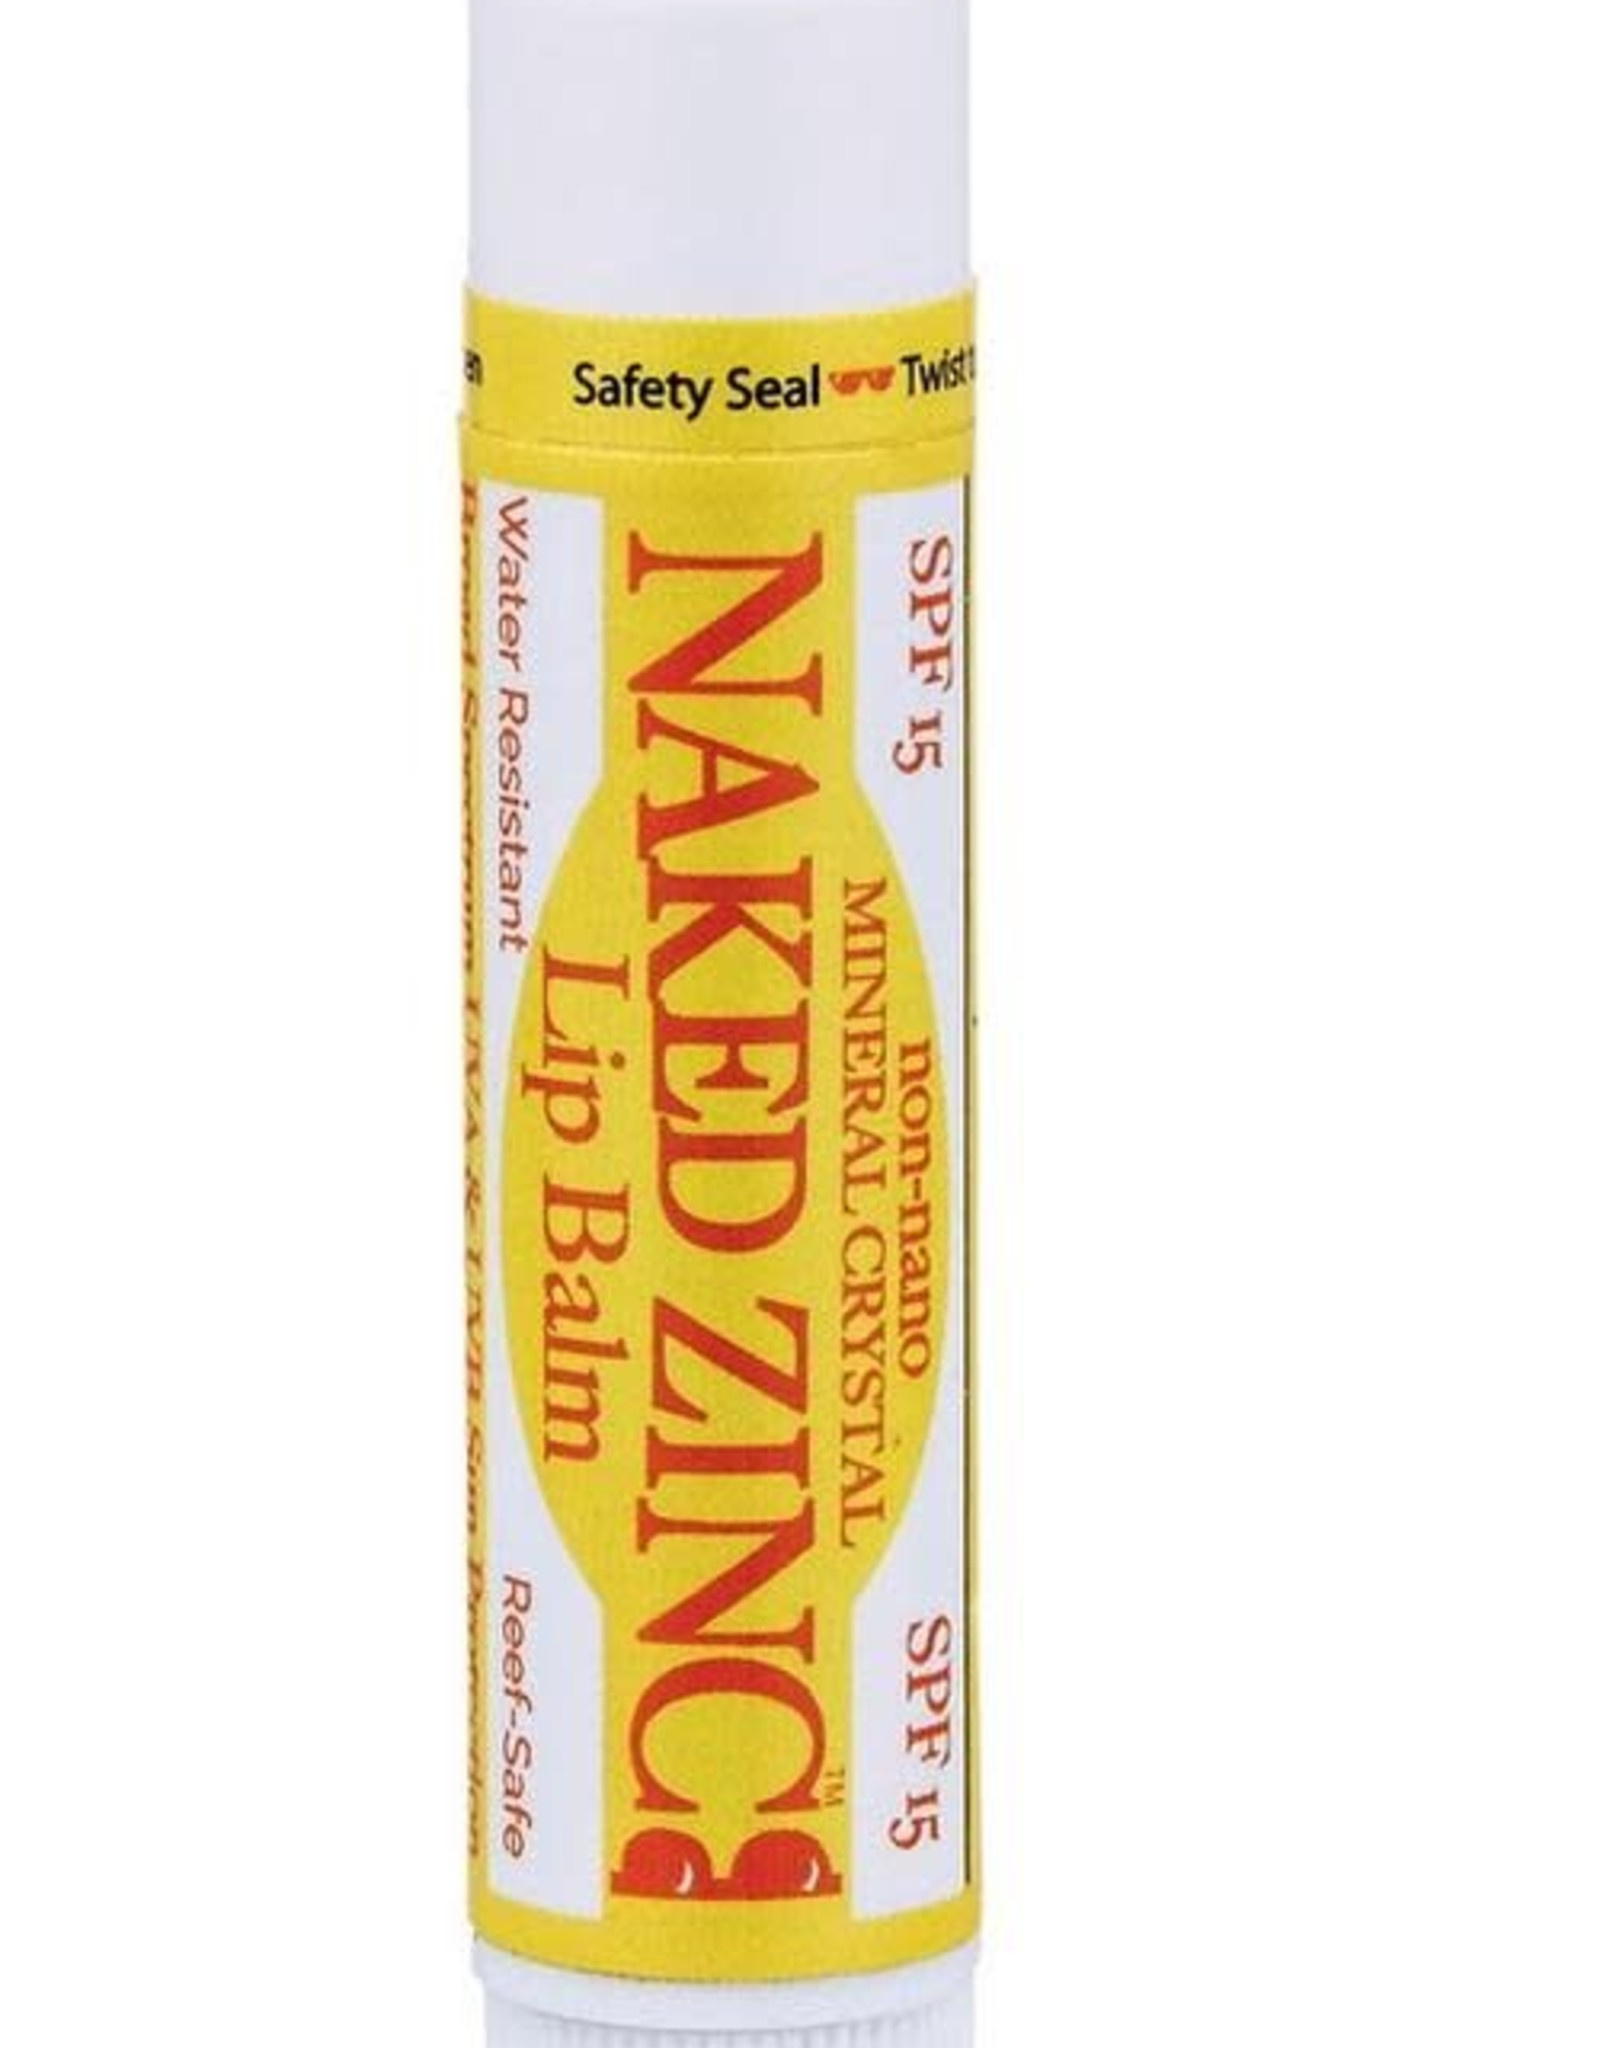 Naked Bee Zinc Sunscreen SPF 30 3 Oz. Disappearing Reef